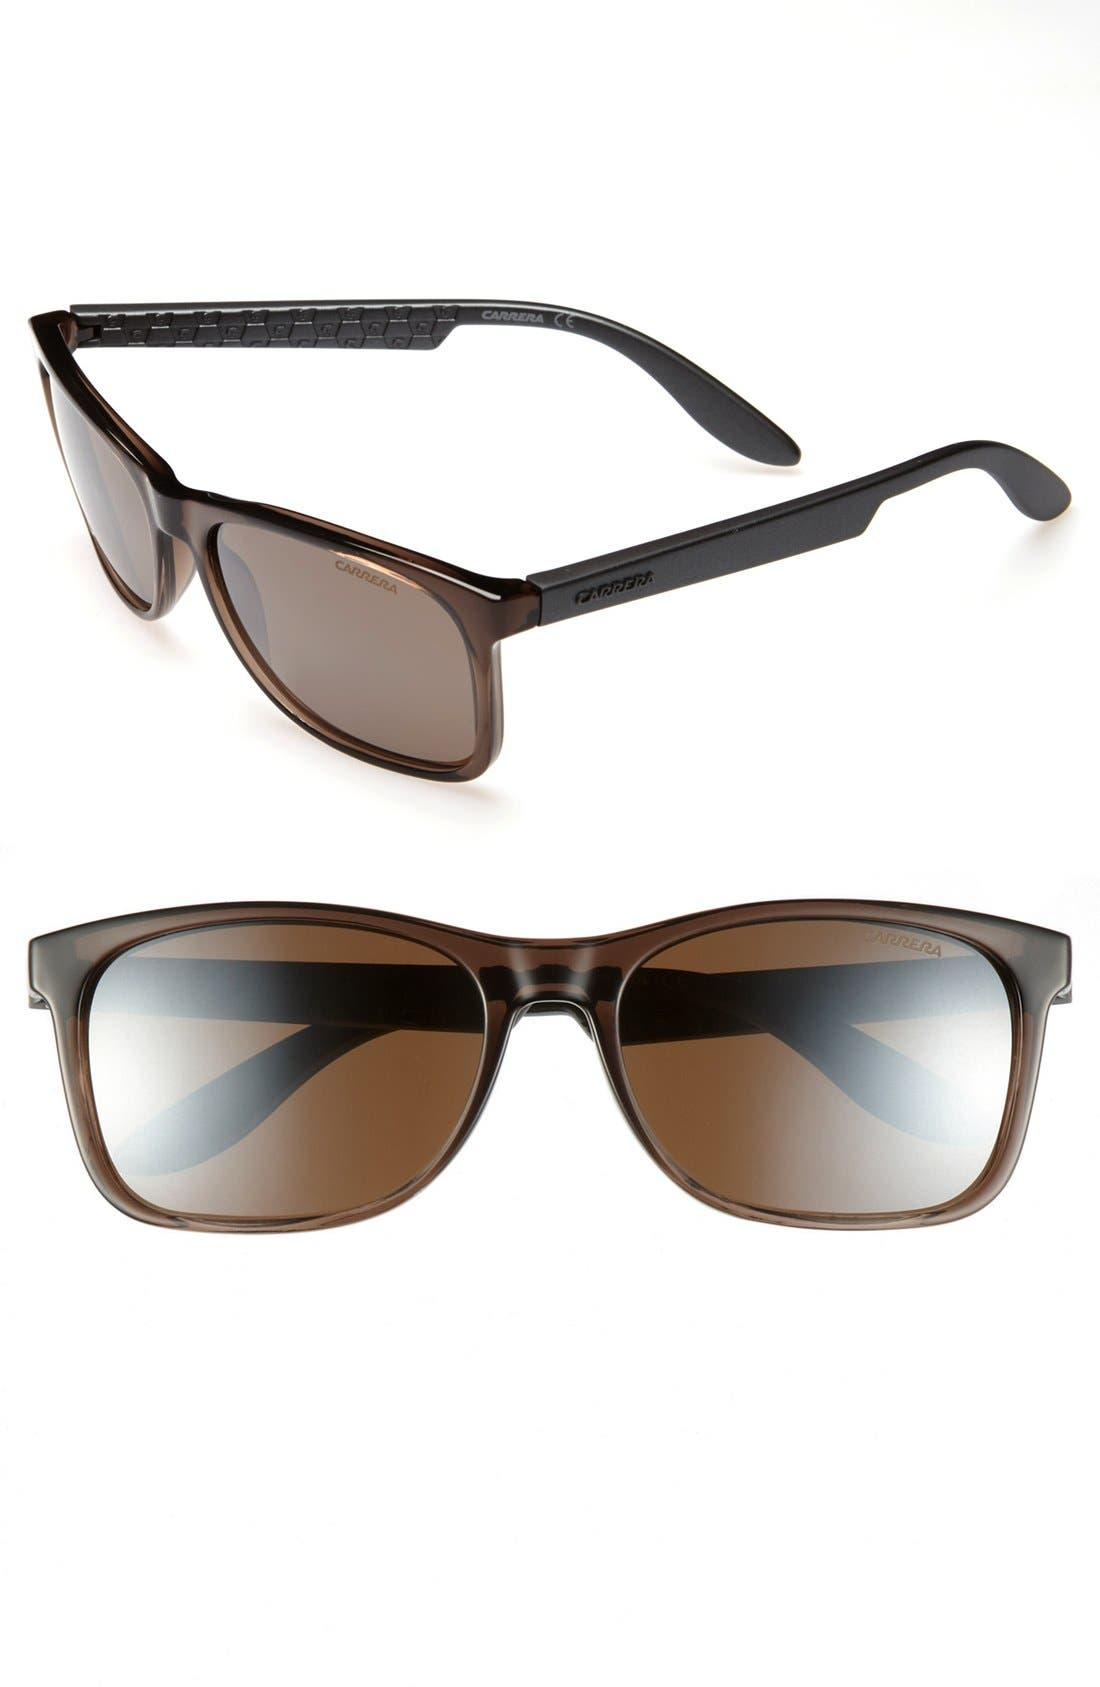 Main Image - Carrera Eyewear 56mm Sunglasses